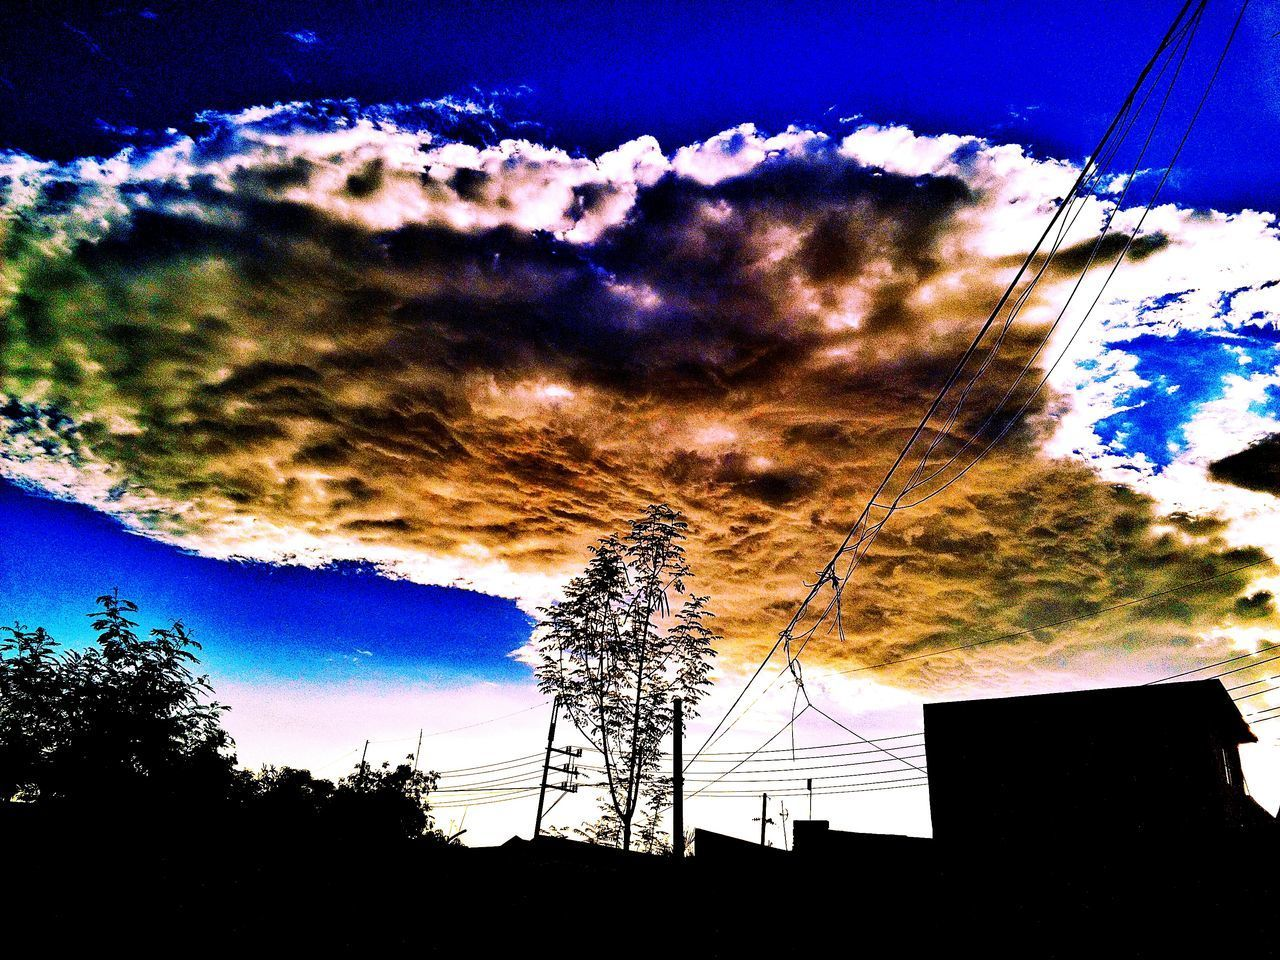 sky, cloud - sky, silhouette, low angle view, cable, no people, blue, outdoors, tree, sunset, nature, architecture, building exterior, beauty in nature, day, telephone line